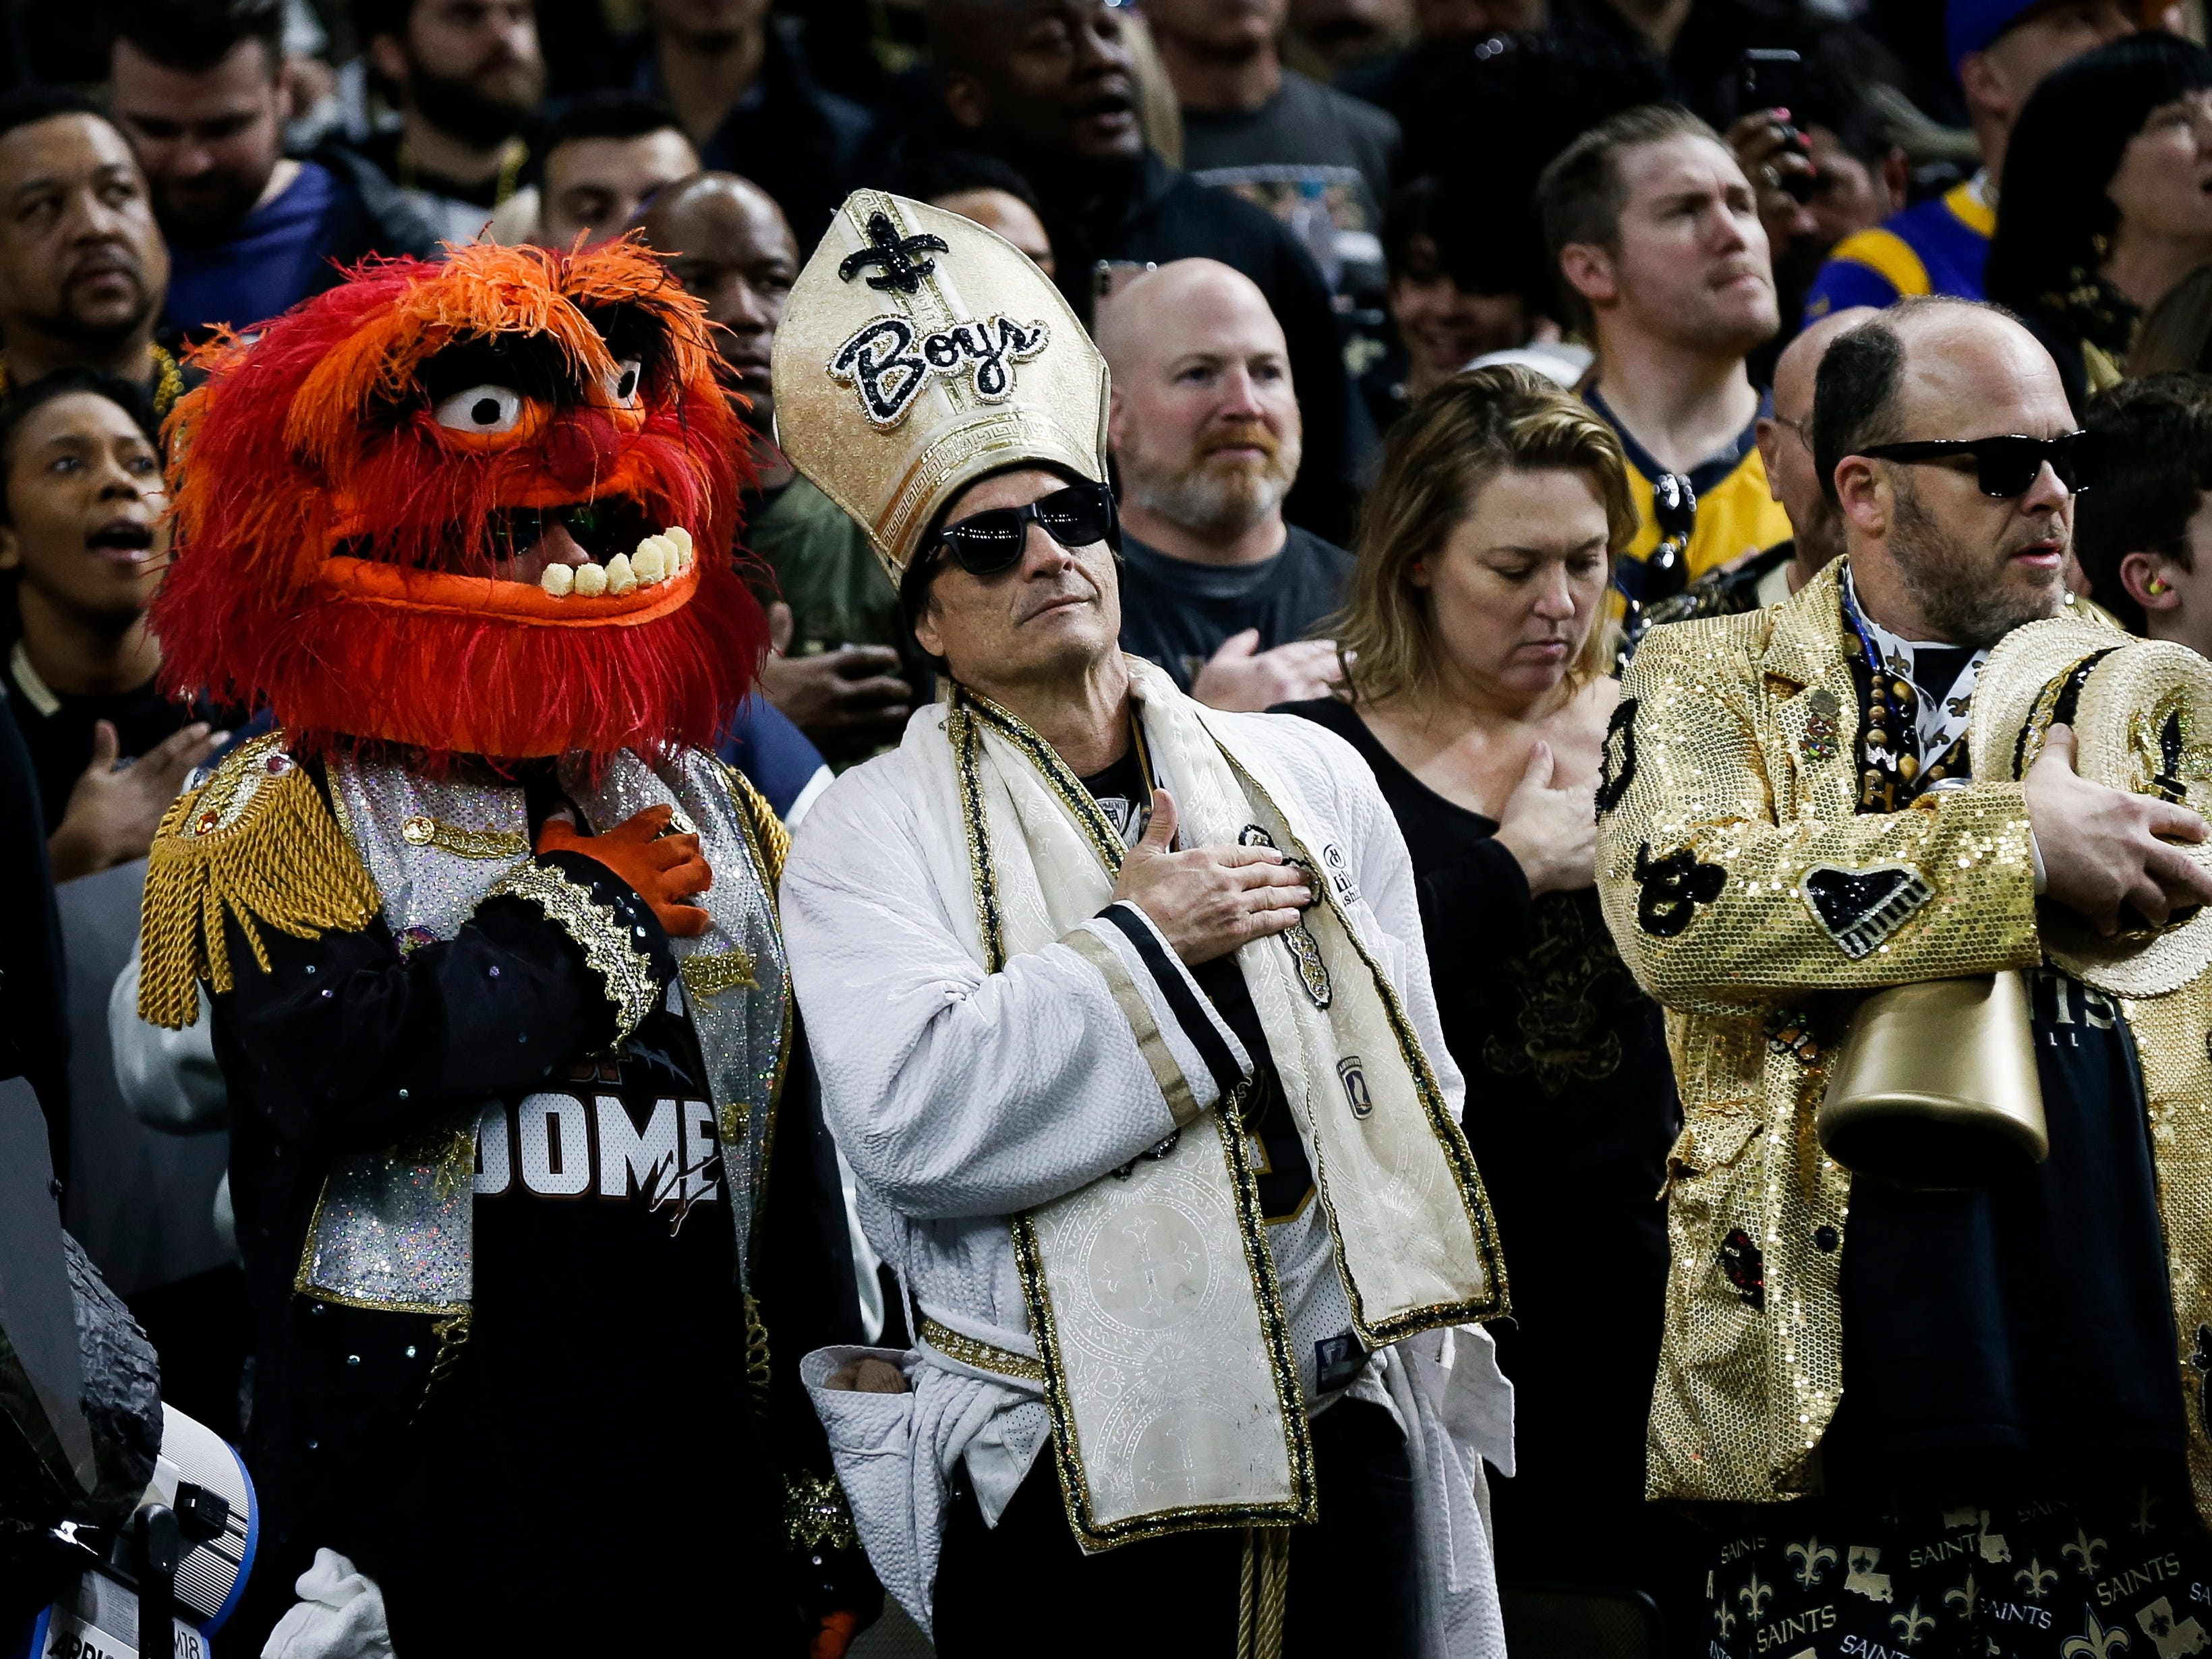 New Orleans stages anti-Super Bowl protests, complete with parades, voodoo dolls